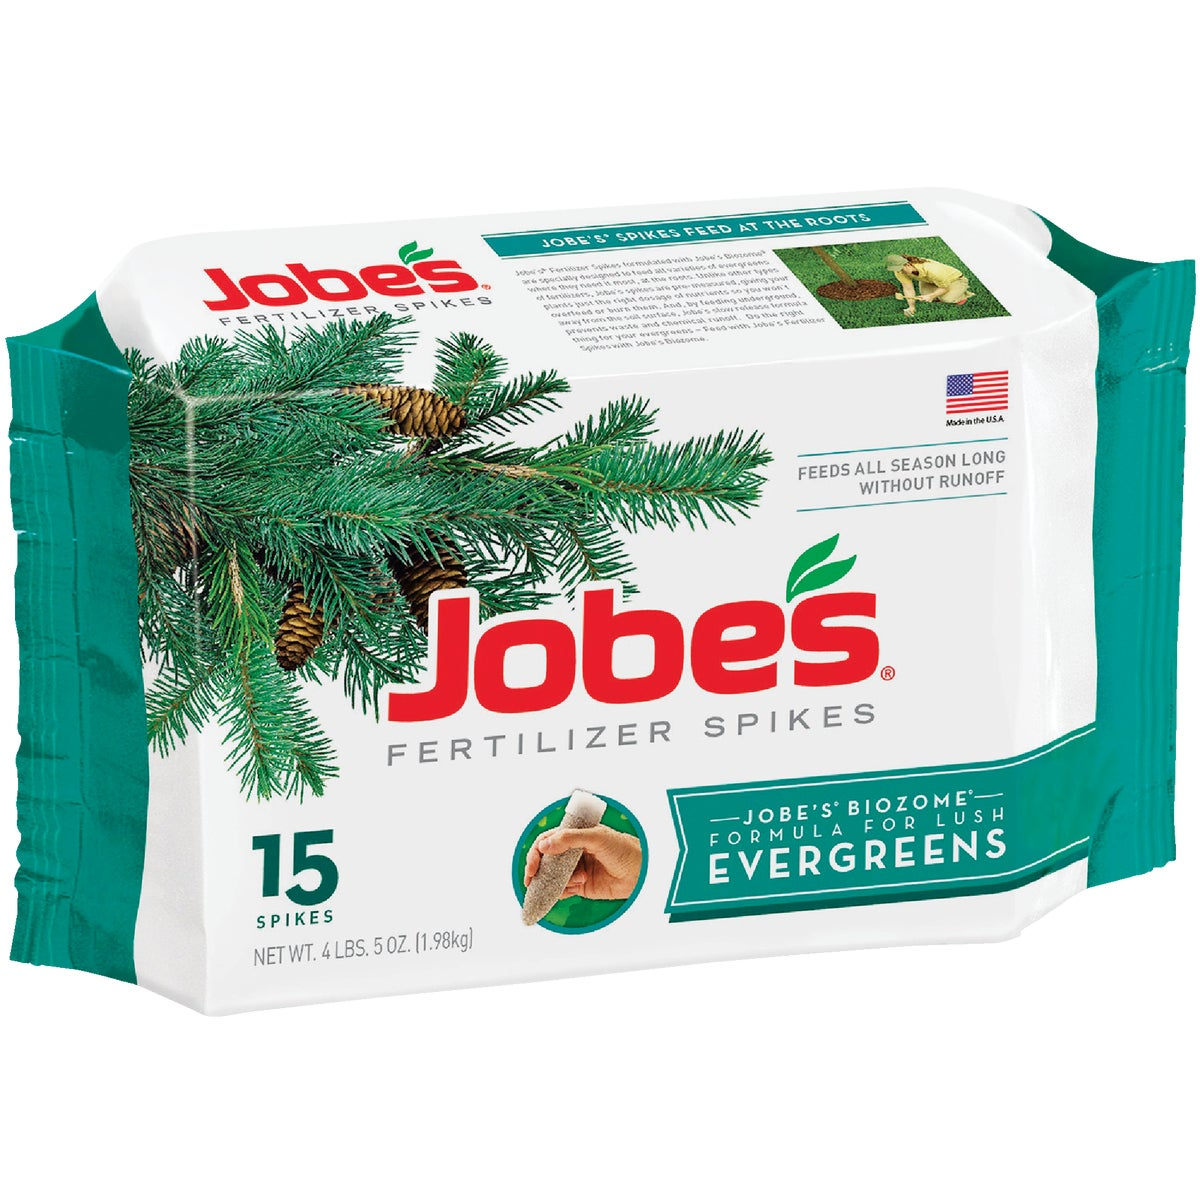 15PK EVERGREEN SPIKES